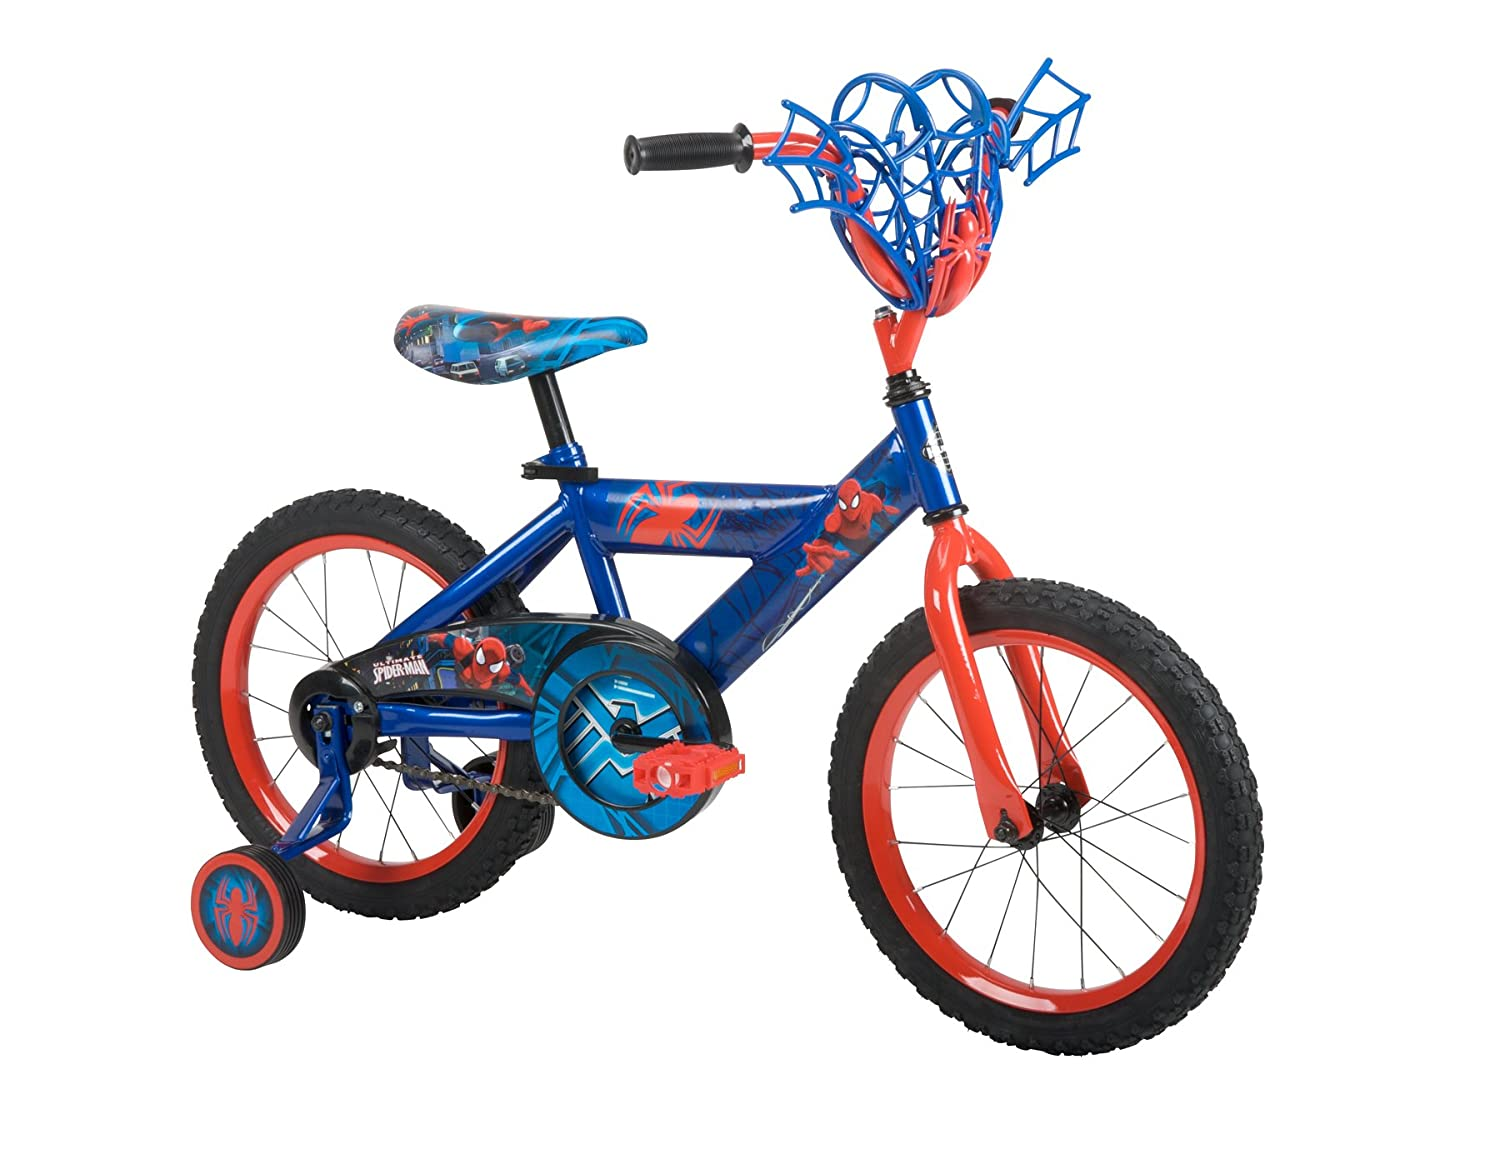 Huffy Bicycle Company Number 21965 Marvel Spider-Man Bike, Metallic Blue/Web Red, 16-Inch B00R4EH4UO